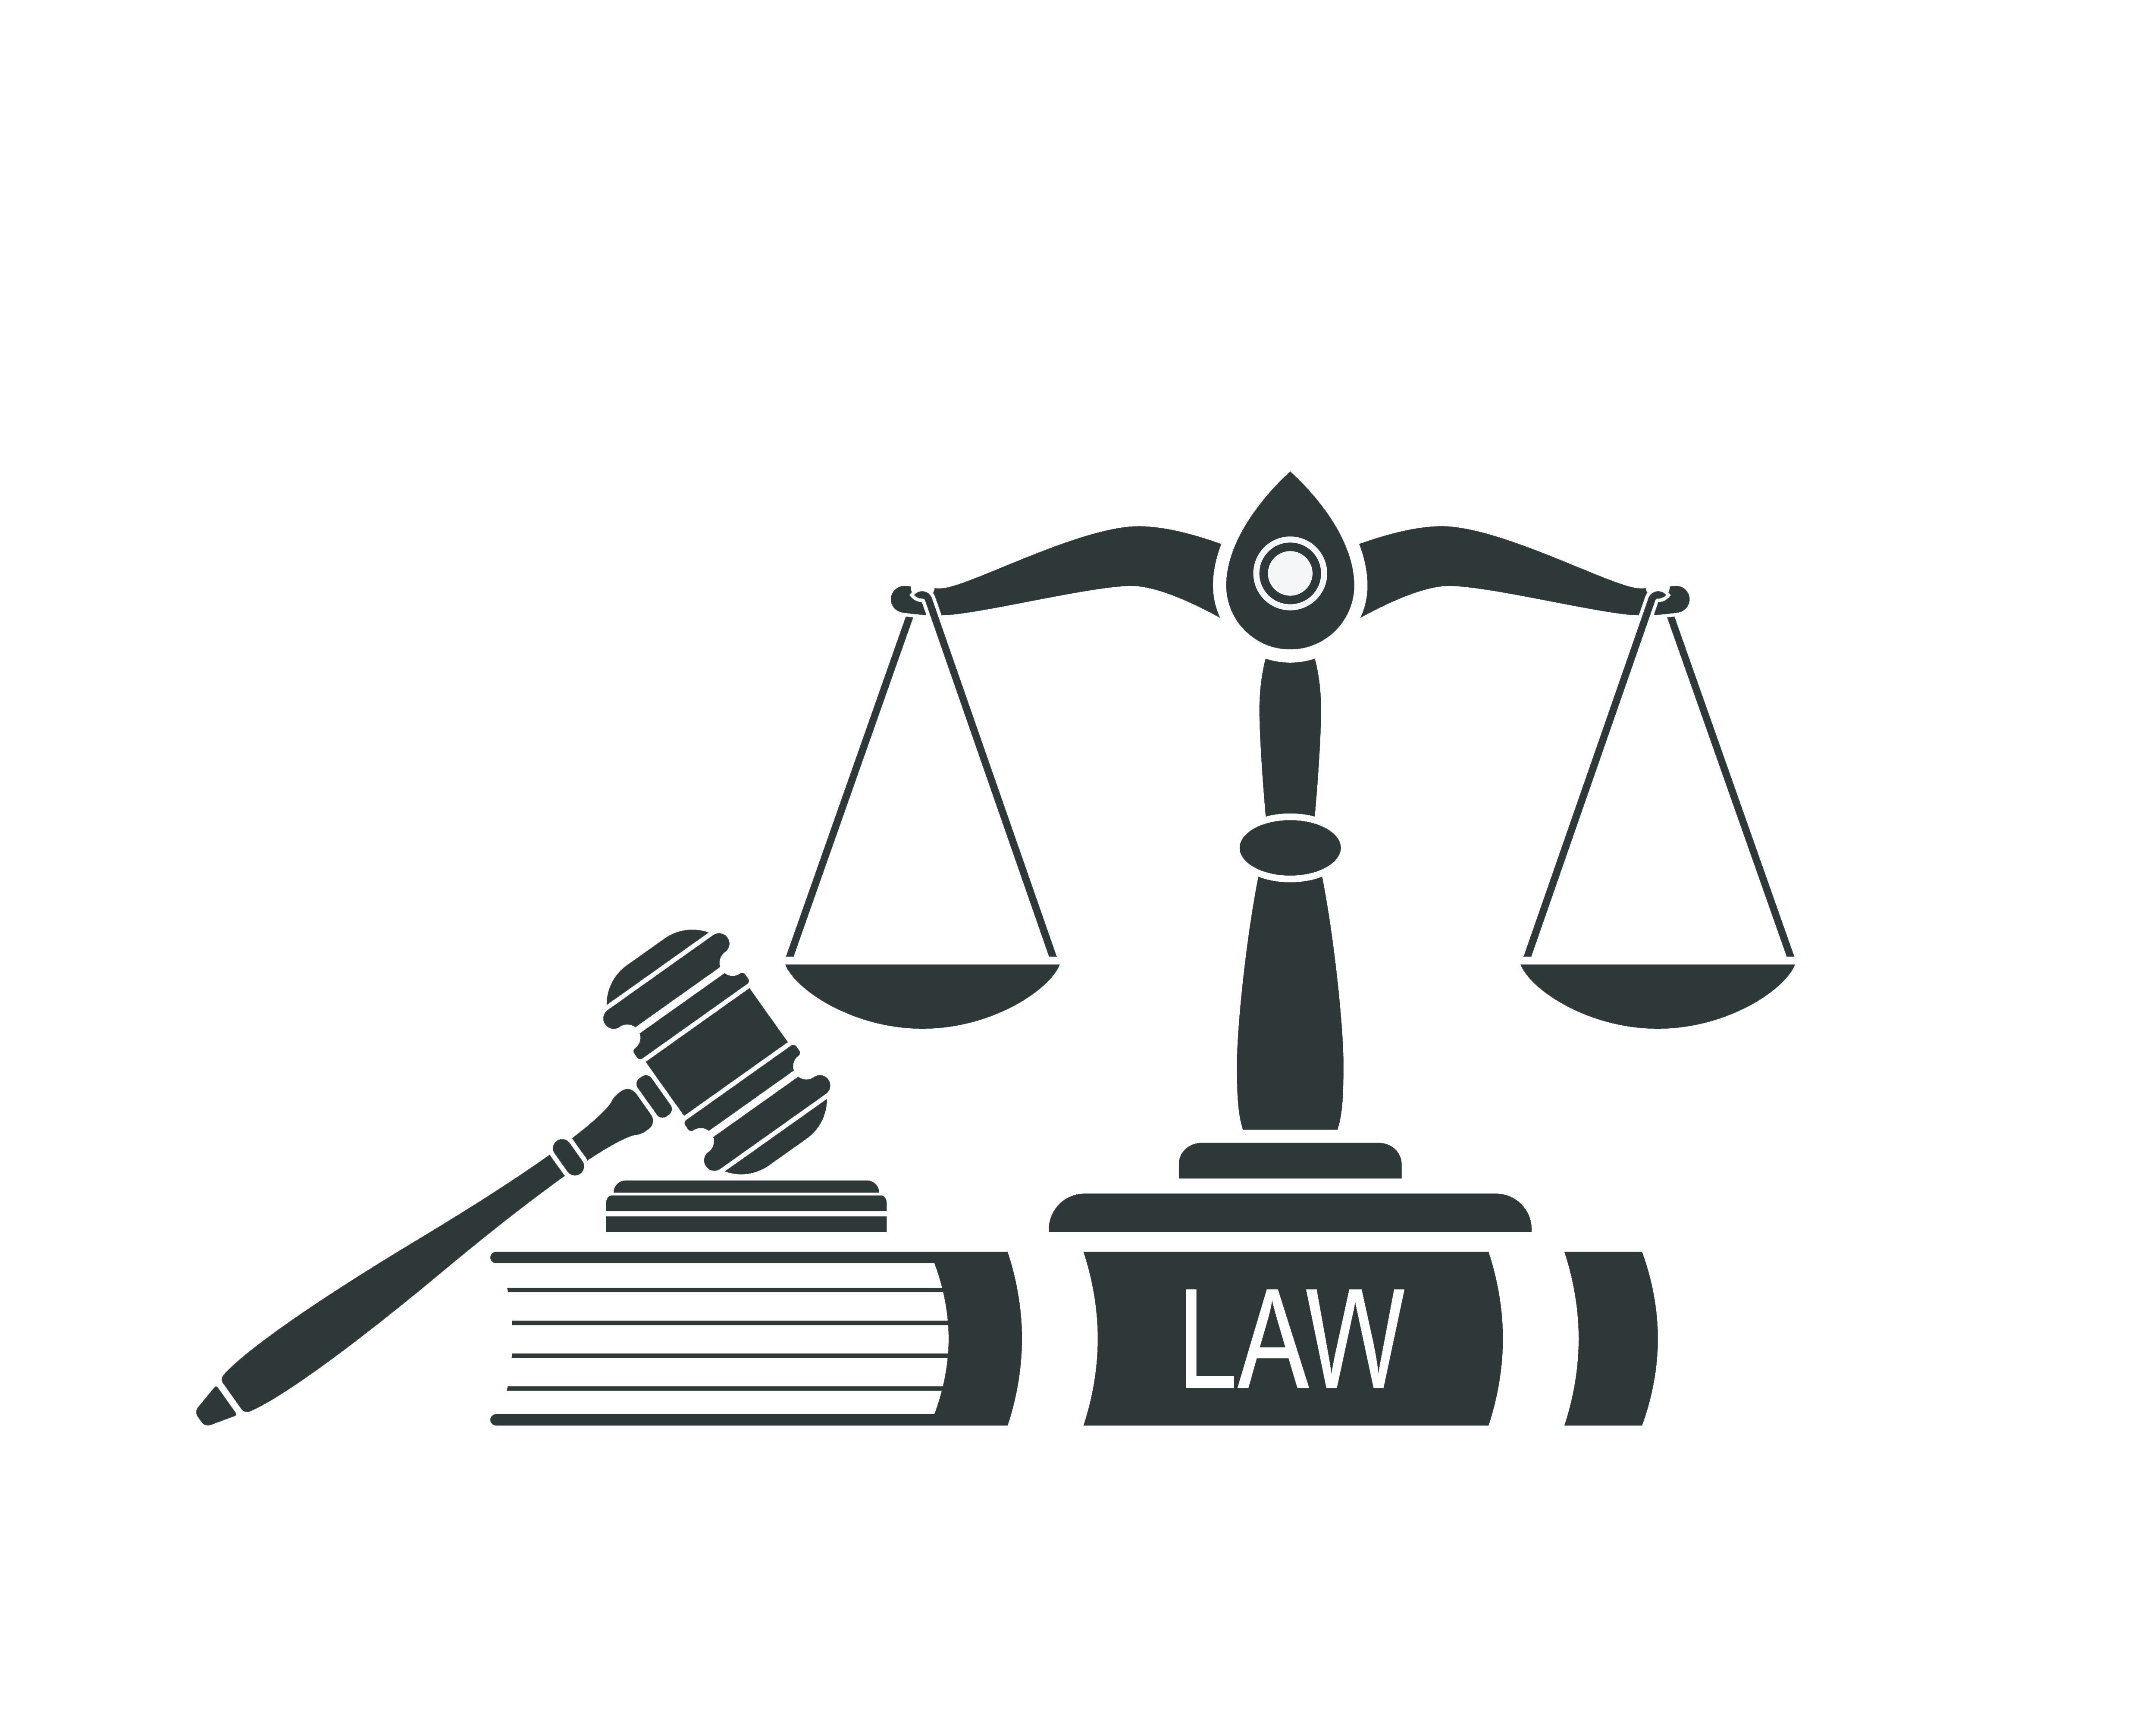 Symbol Of Law And Justice Concept Law And Justice Scales Of Ju Bfff